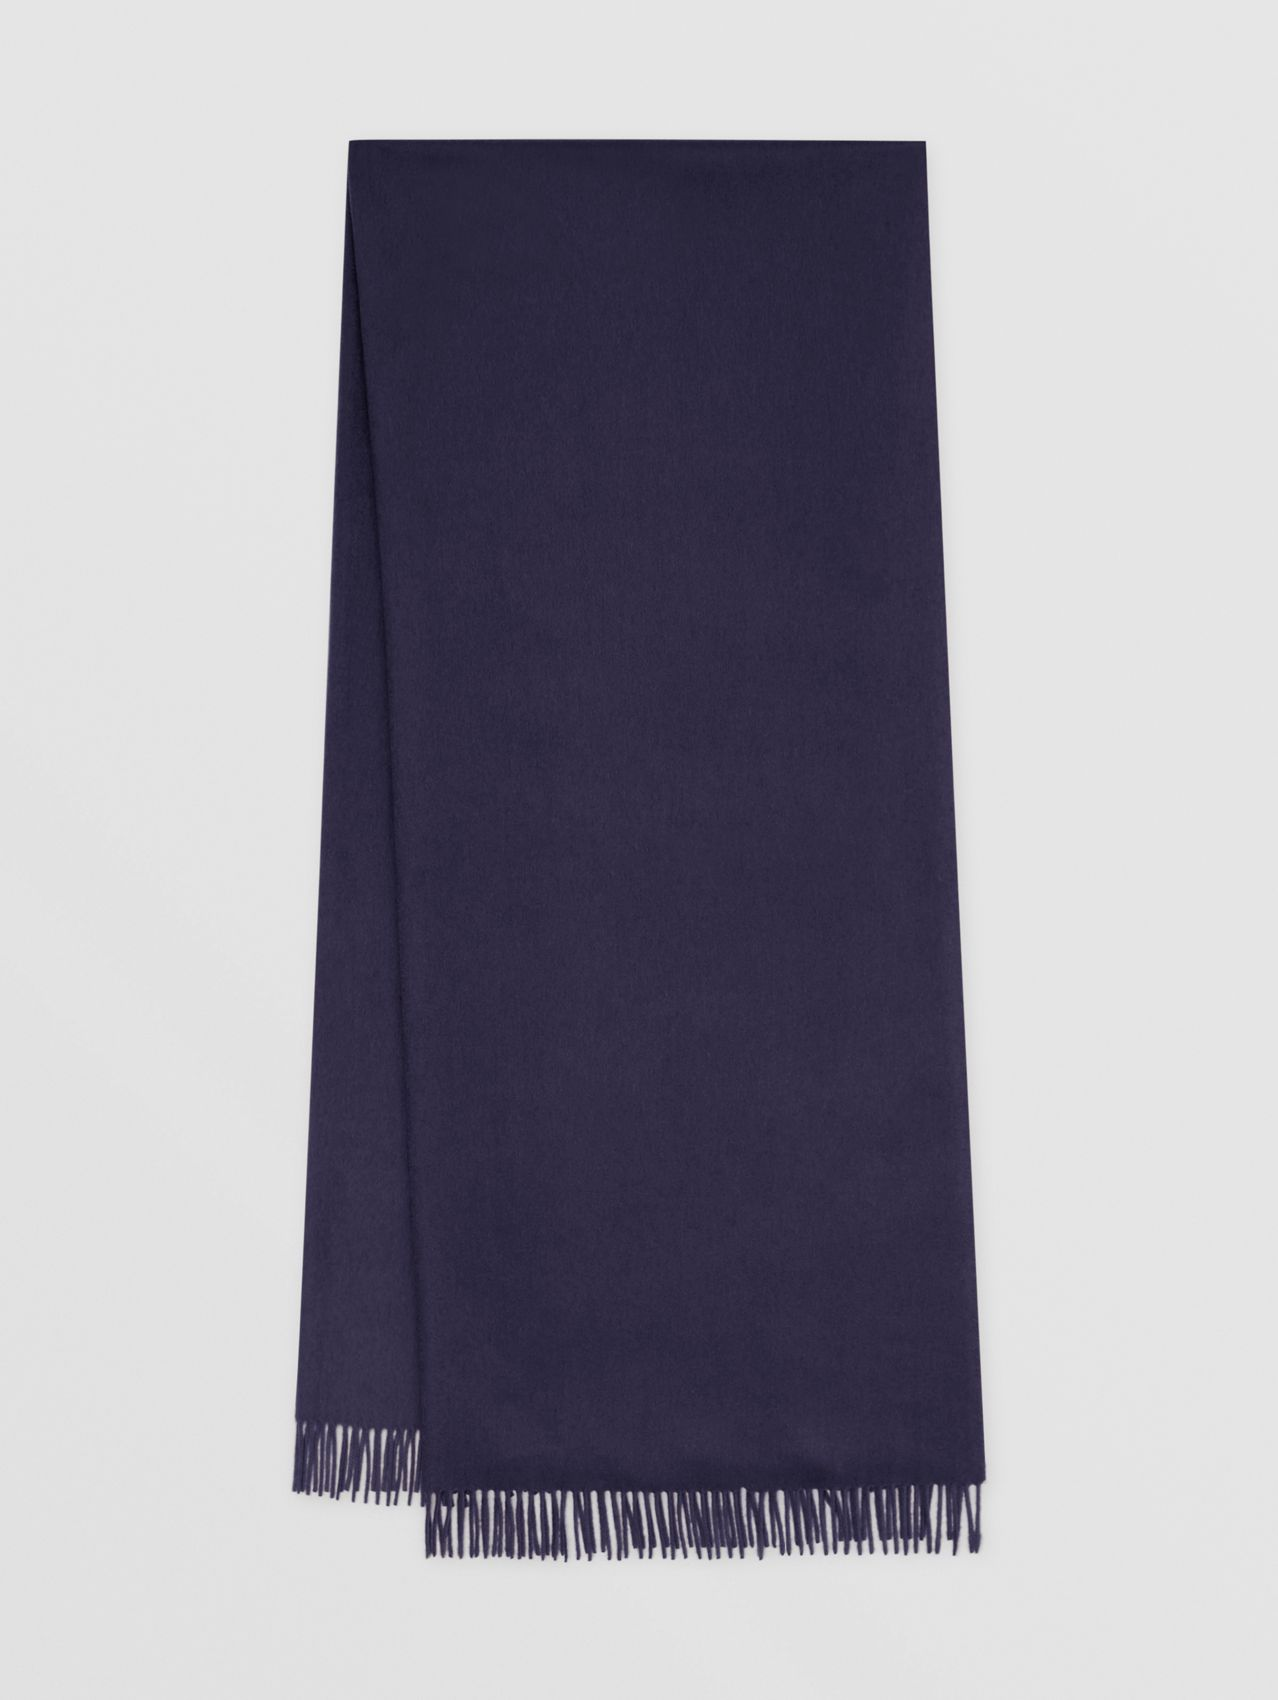 Monogram Motif Regenerated Cashmere Wool Scarf in Navy